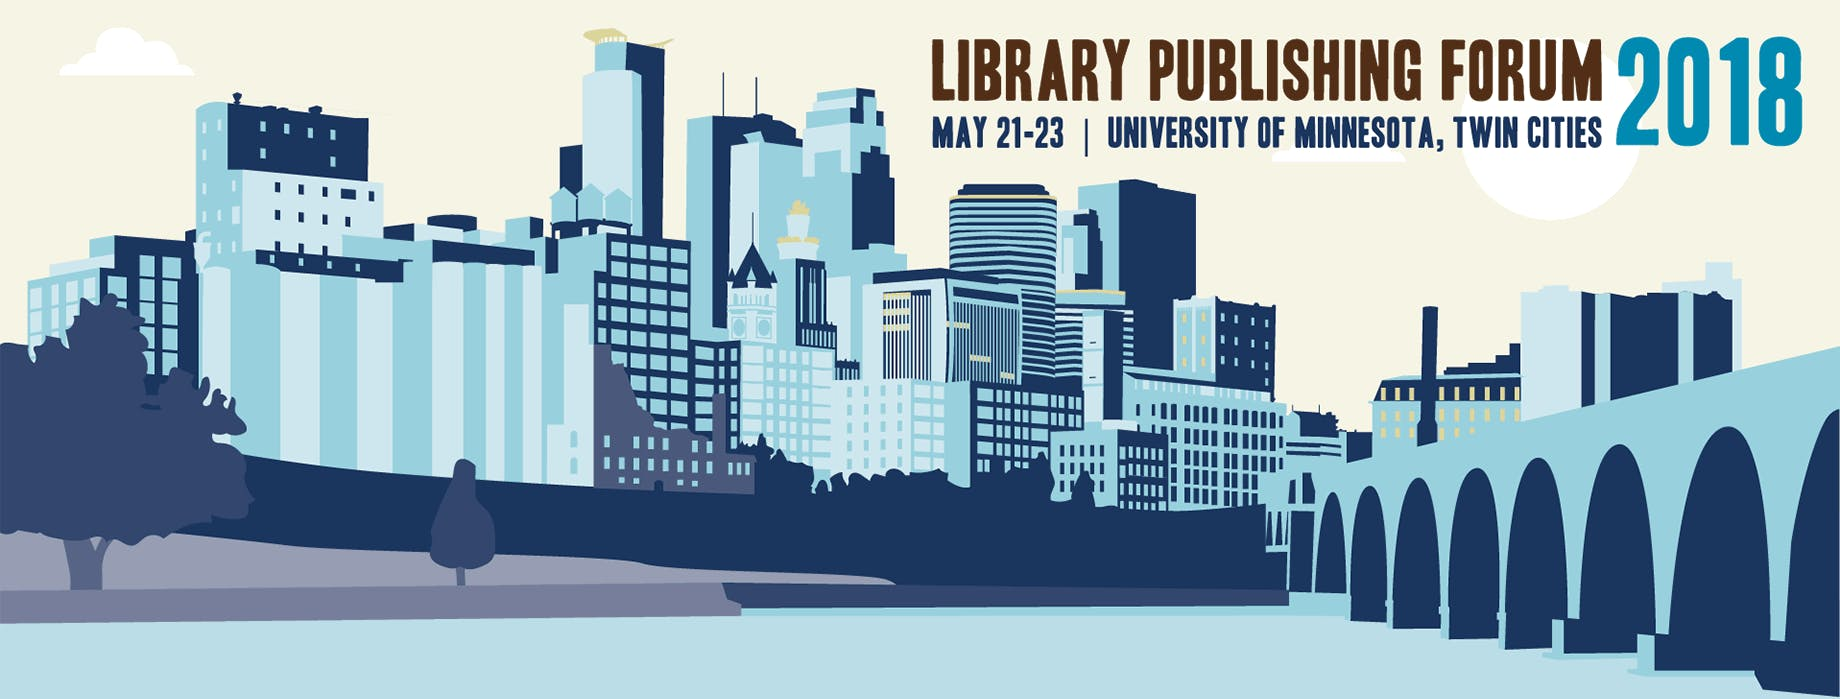 Library Publishing Forum 2018 Registration